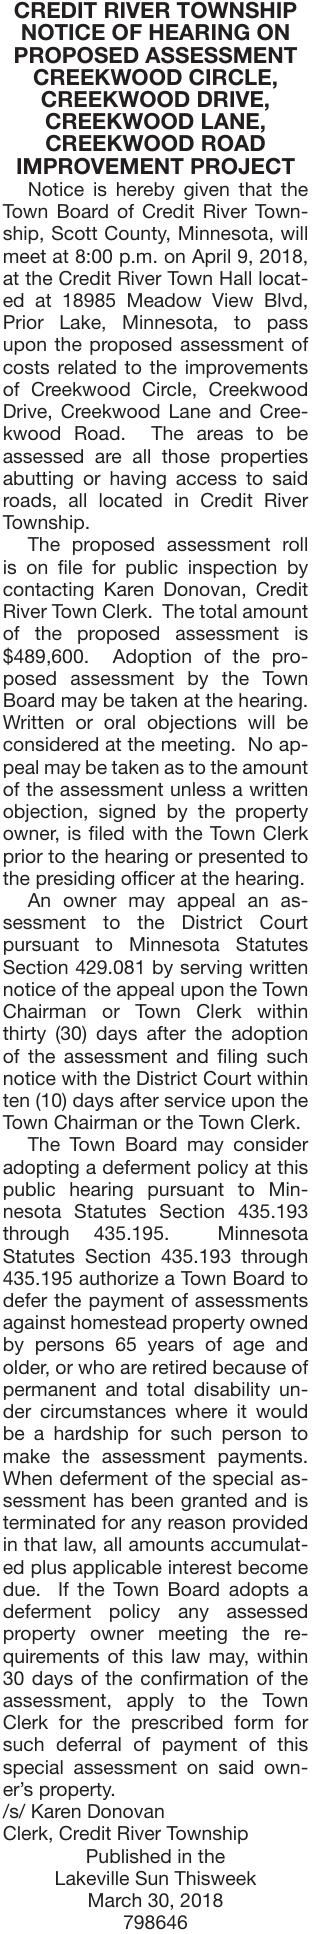 Proposed Assessment Creekwood Notice Of Public Hearing